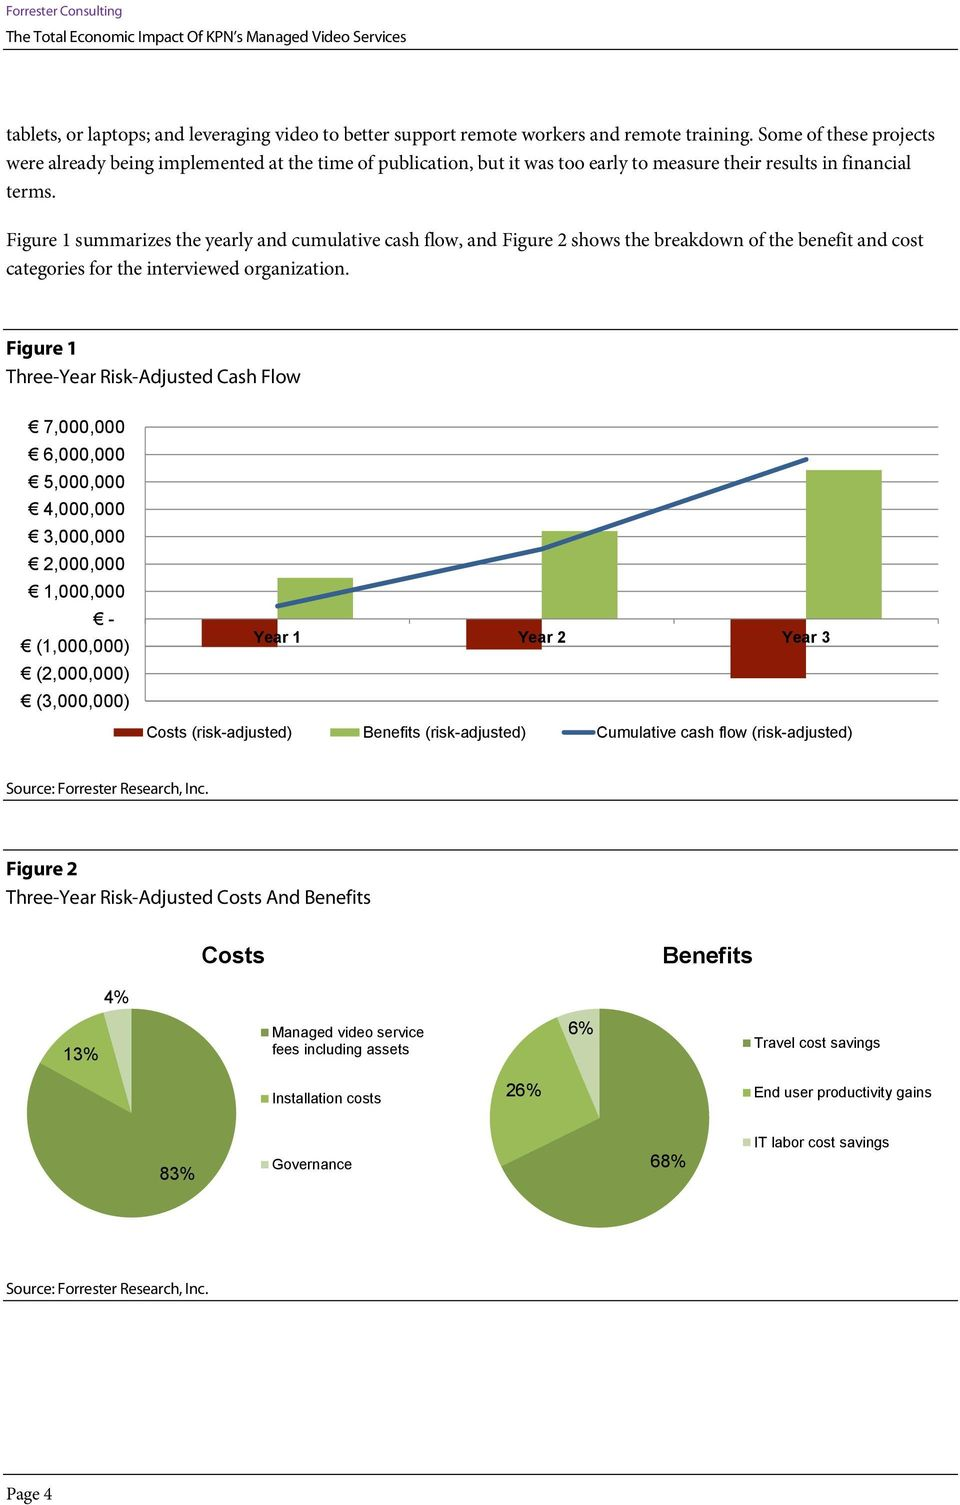 Figure 1 summarizes the yearly and cumulative cash flw, and Figure 2 shws the breakdwn f the benefit and cst categries fr the interviewed rganizatin.